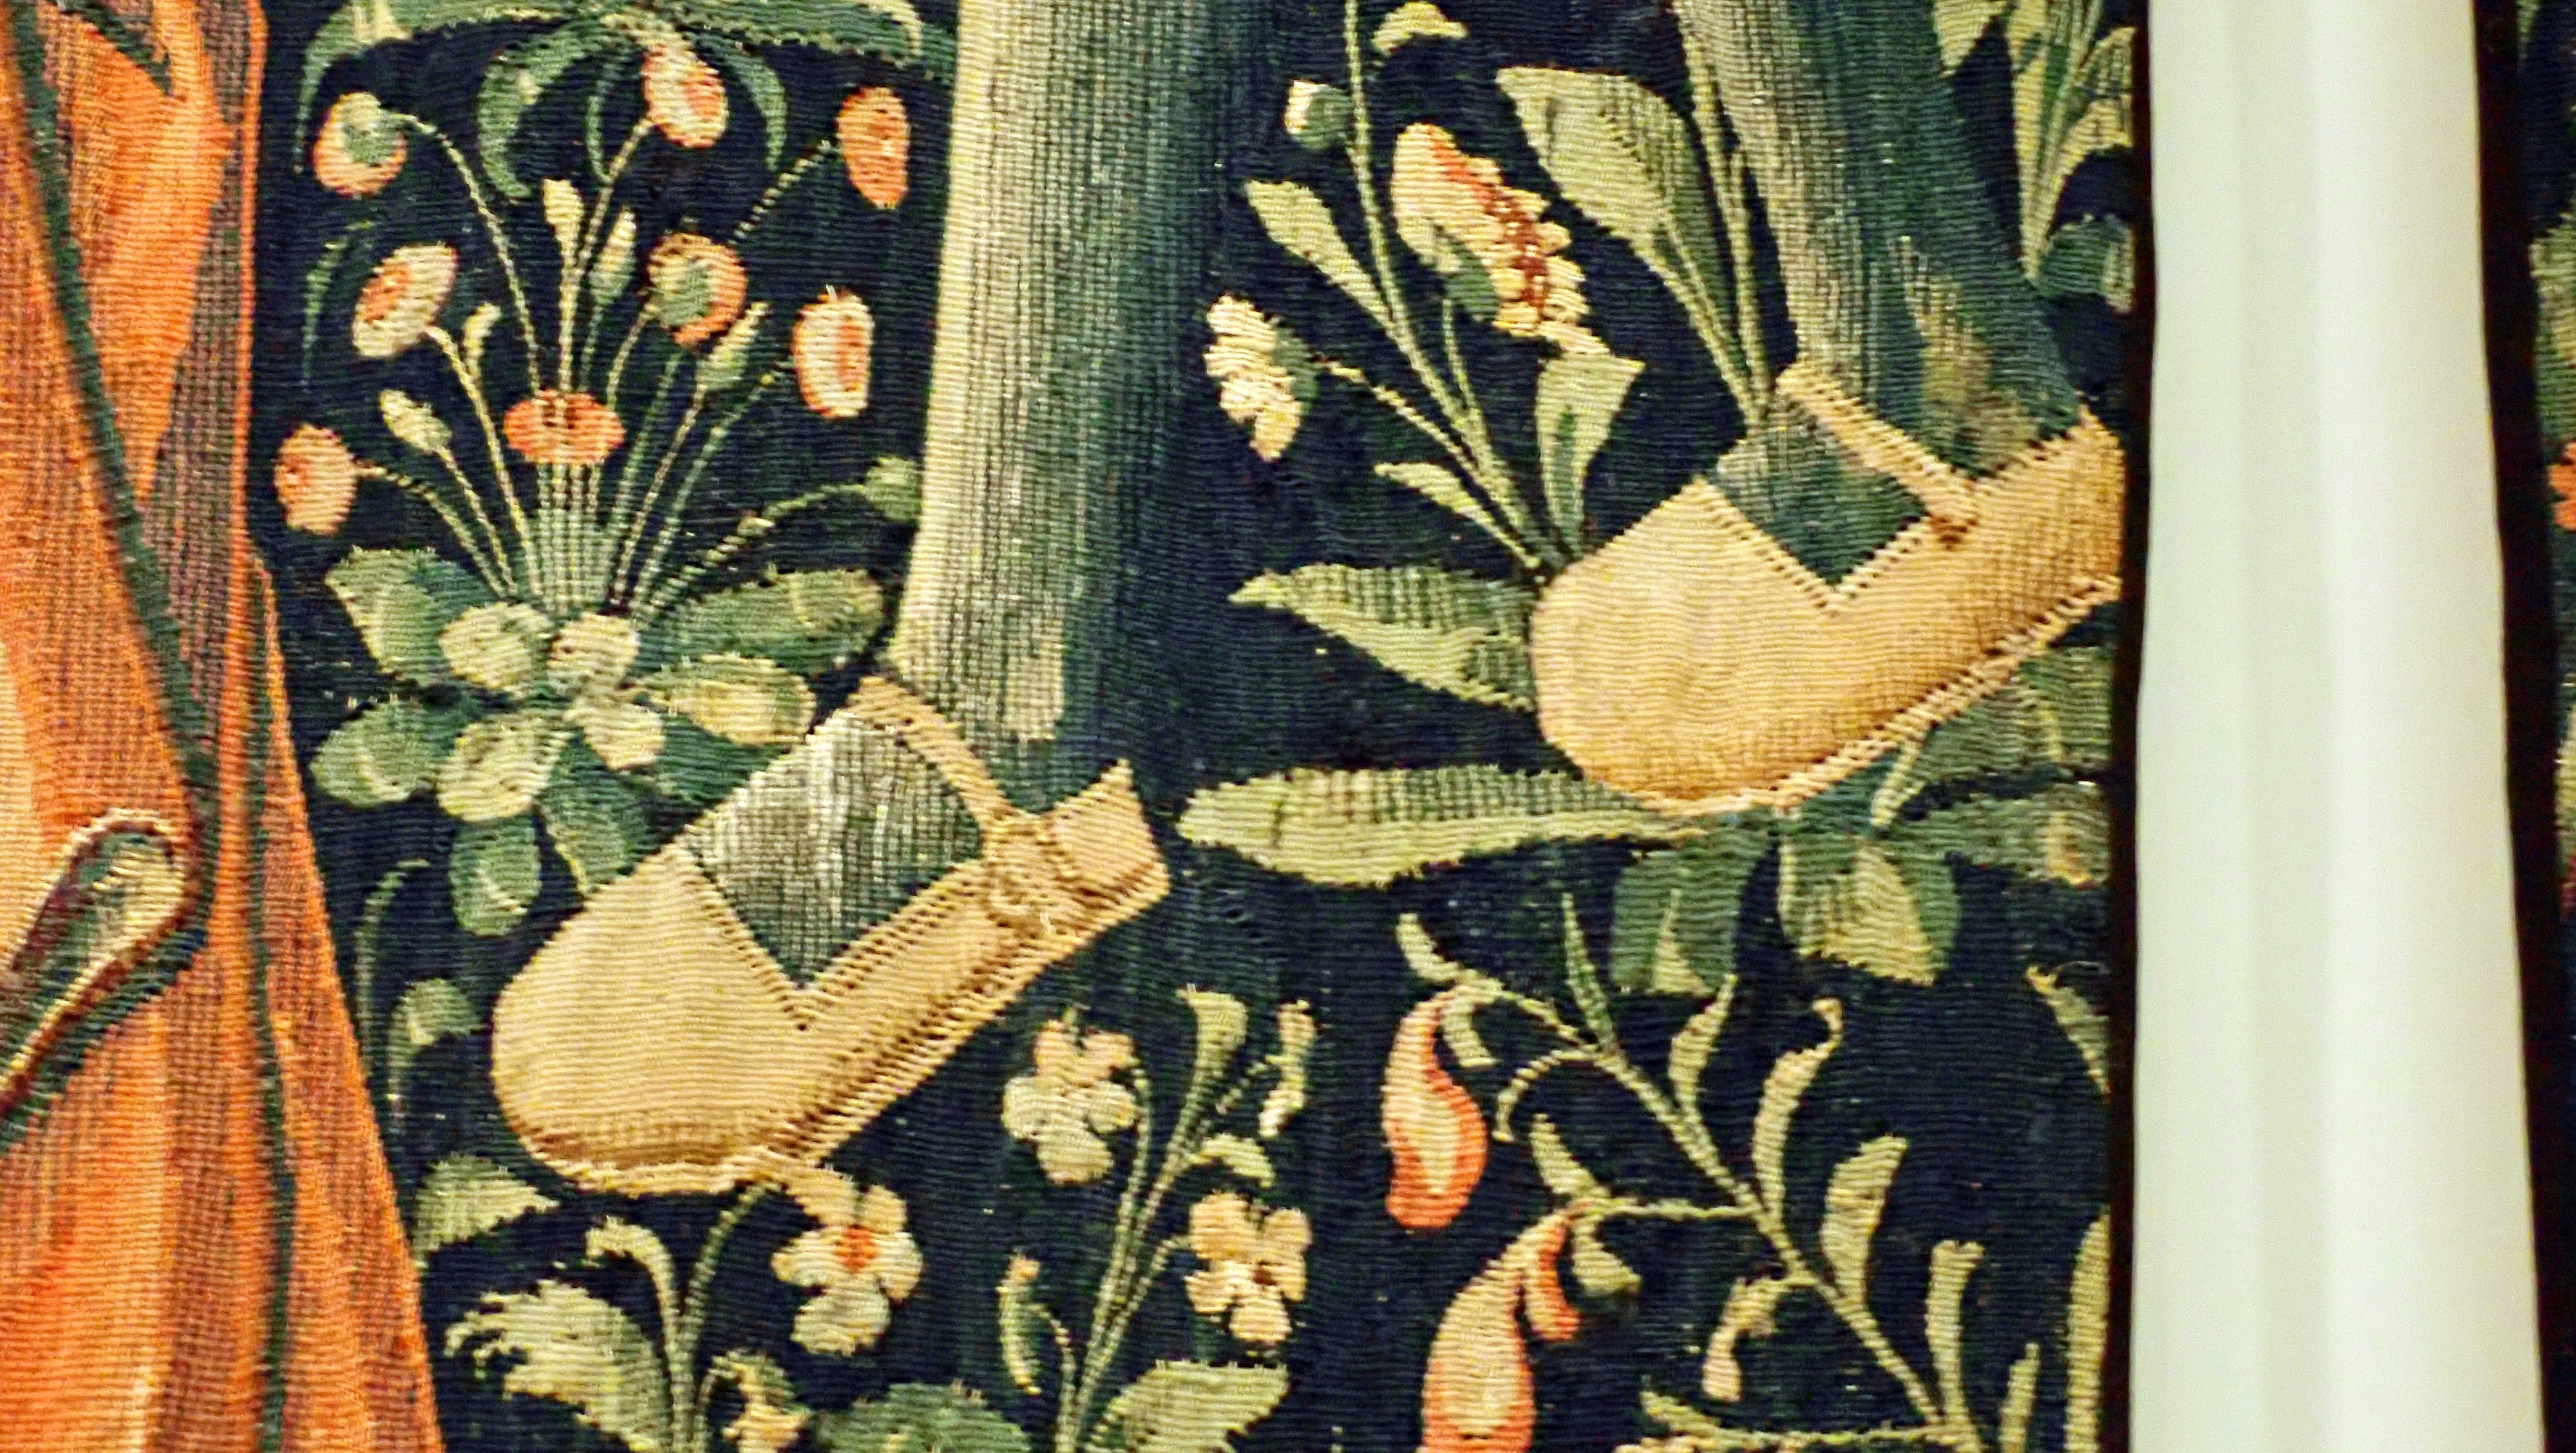 1500 (approx) - Cluny museum - Tapestry from the Seigneurial life series - The Bath